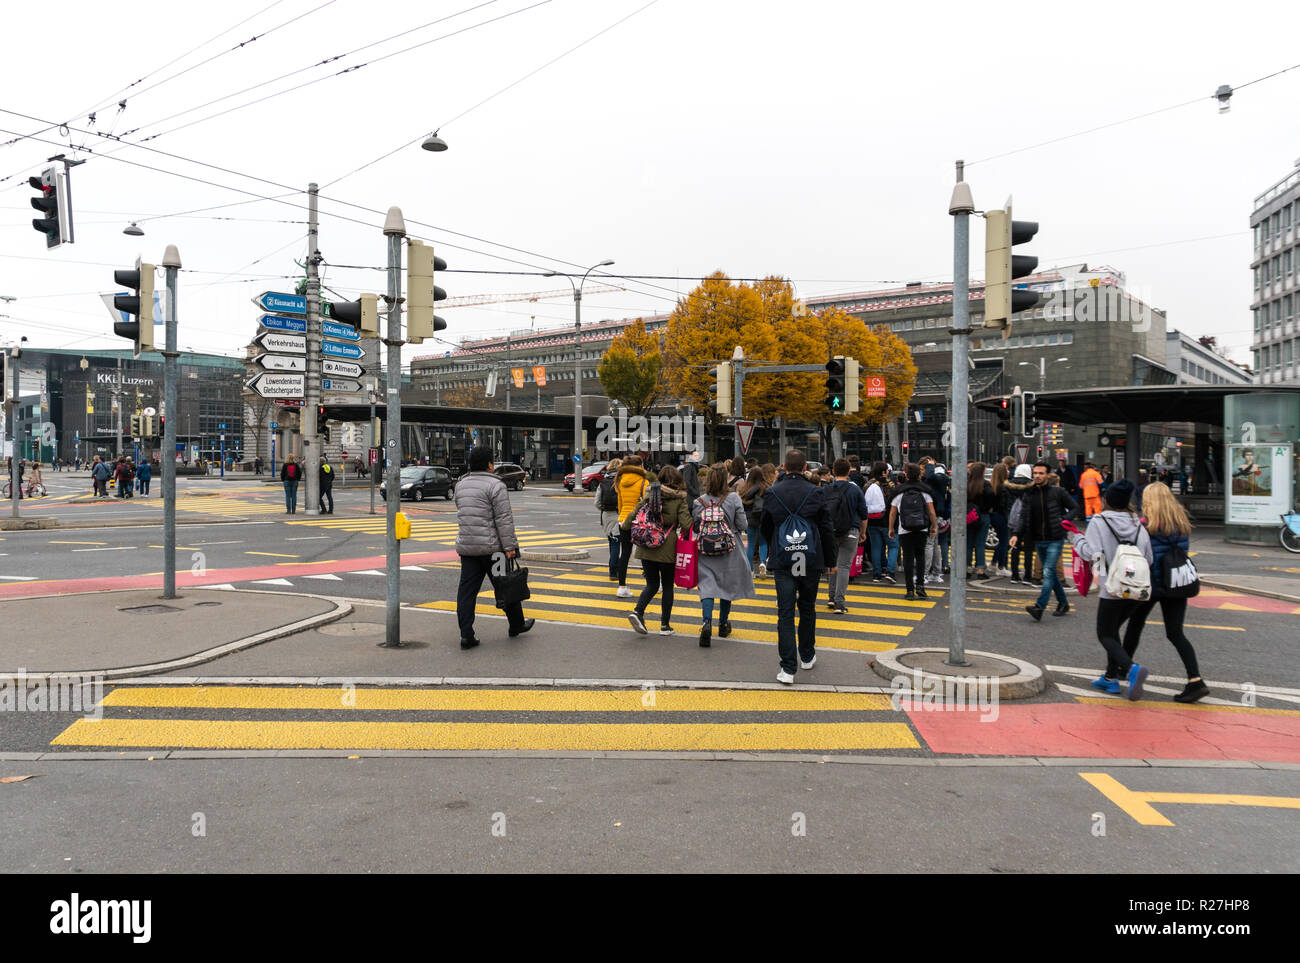 Lucerne, LU / Switzerland - November 9, 2018: many pedestrians crowd an intersection island at a busy road and crosswalk during rush hour in Lucerne i - Stock Image